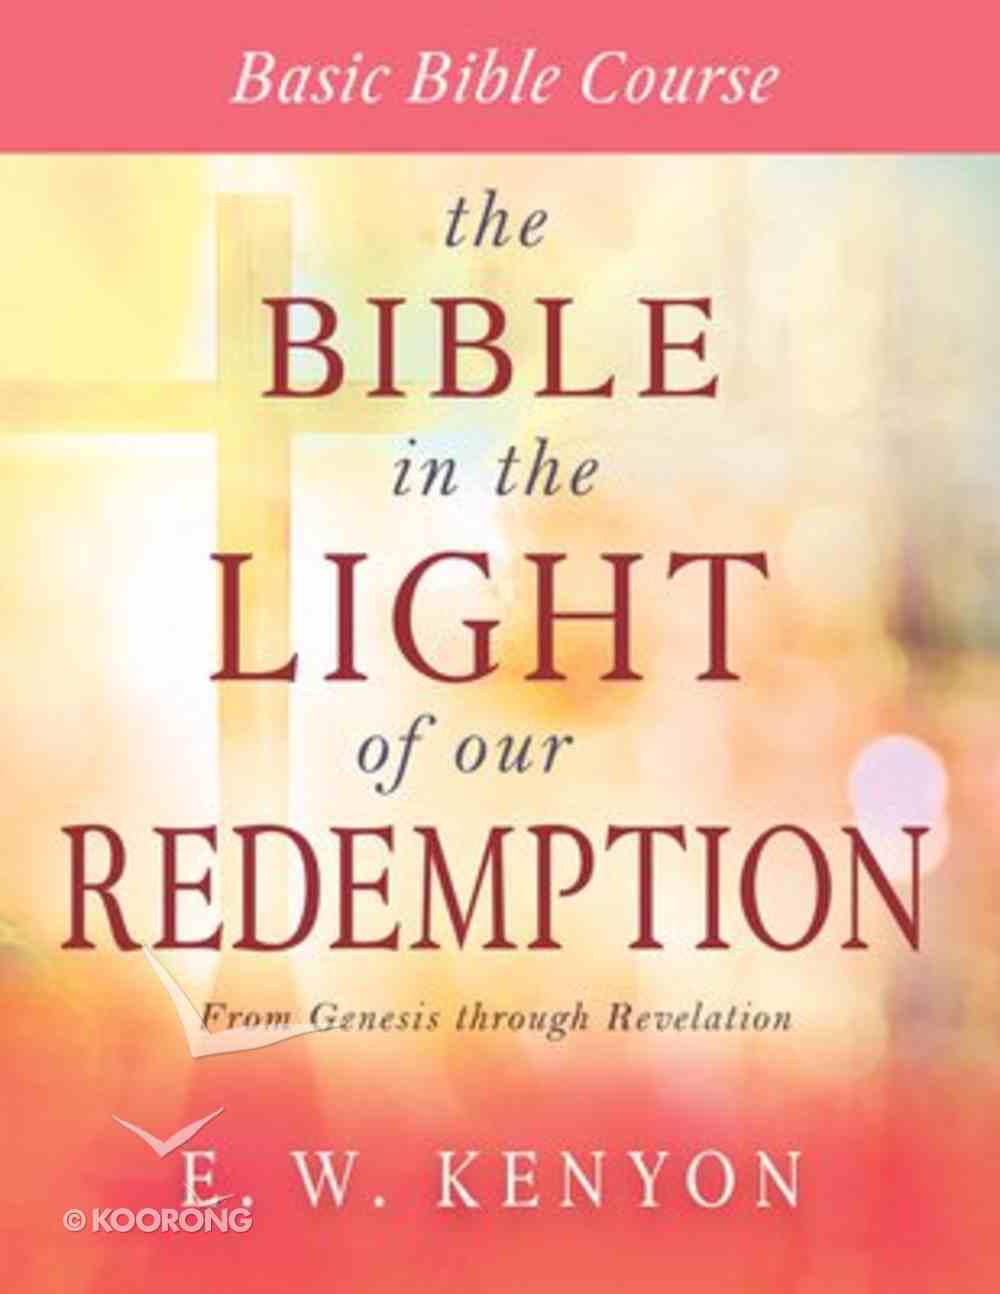 The Bible in the Light of Our Redemption: Basic Bible Course Paperback